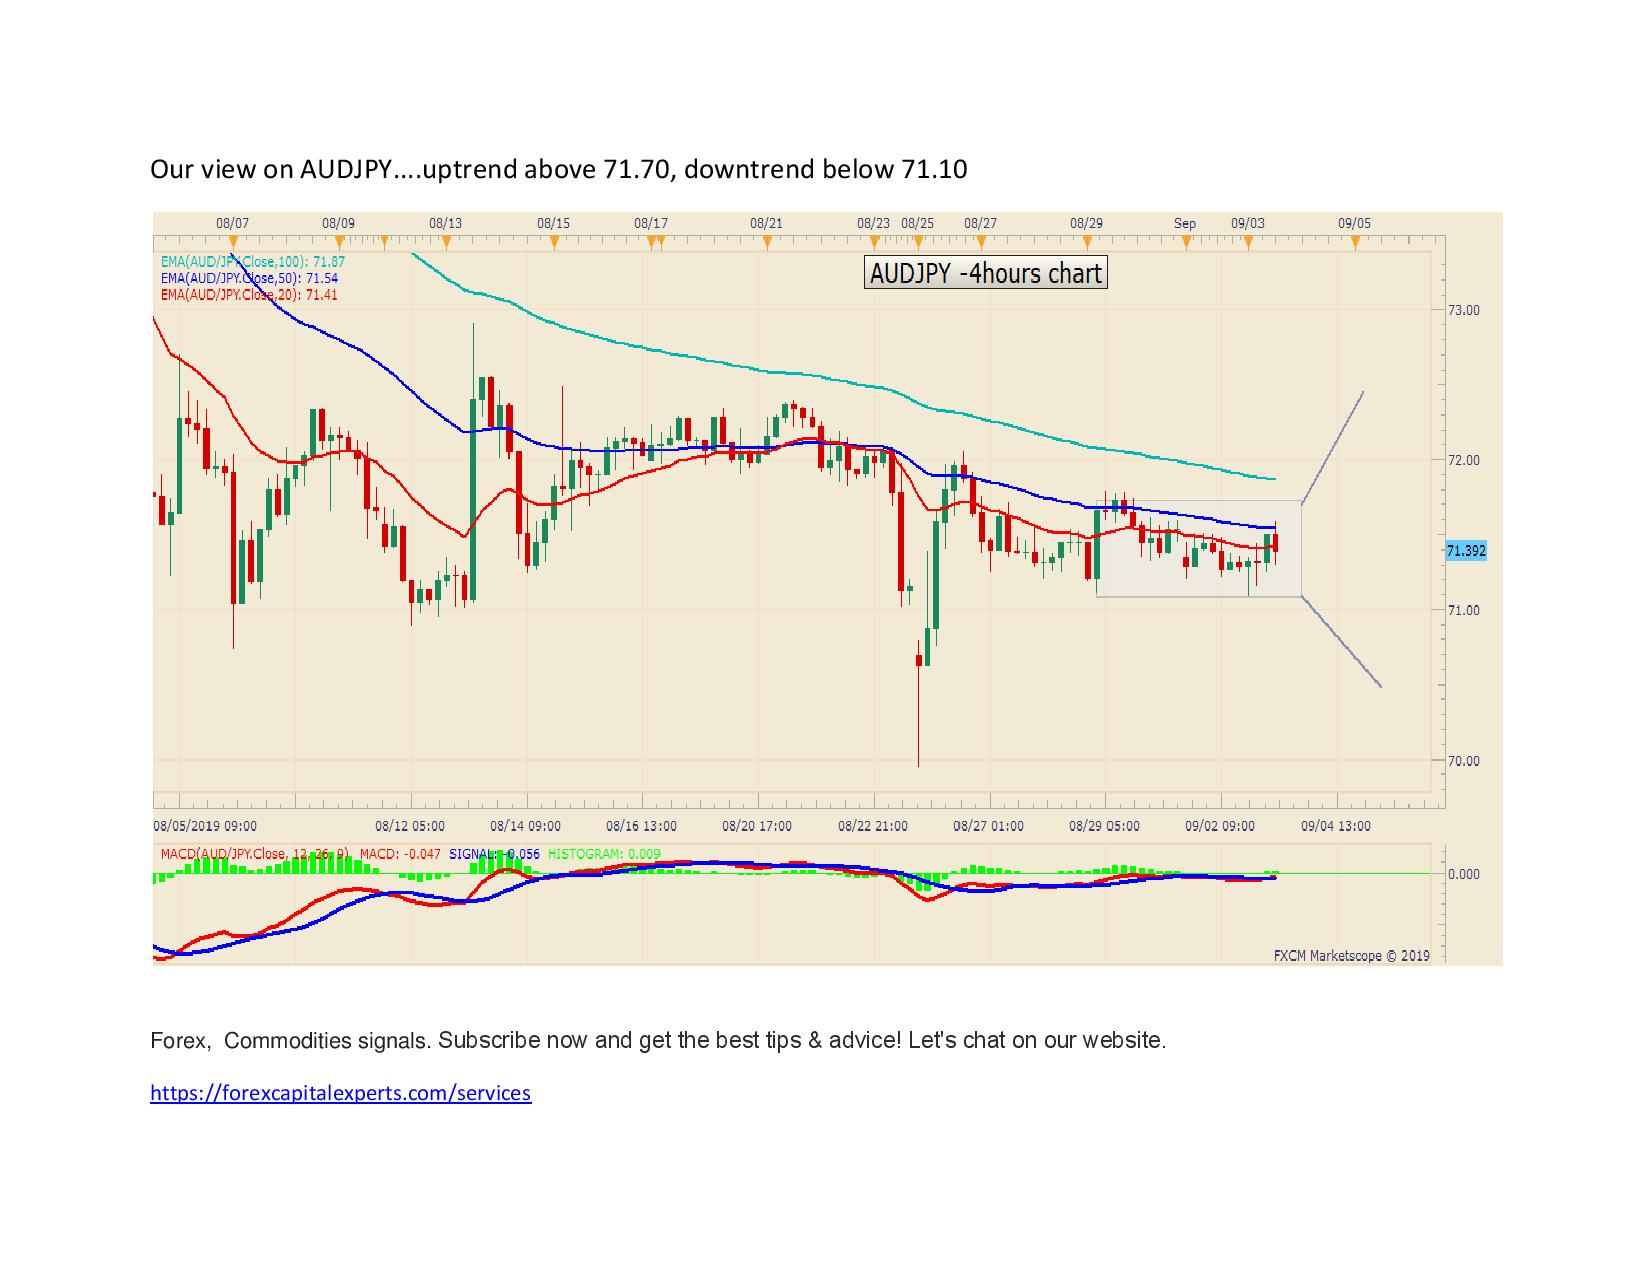 Our view on AUDJPY page 001